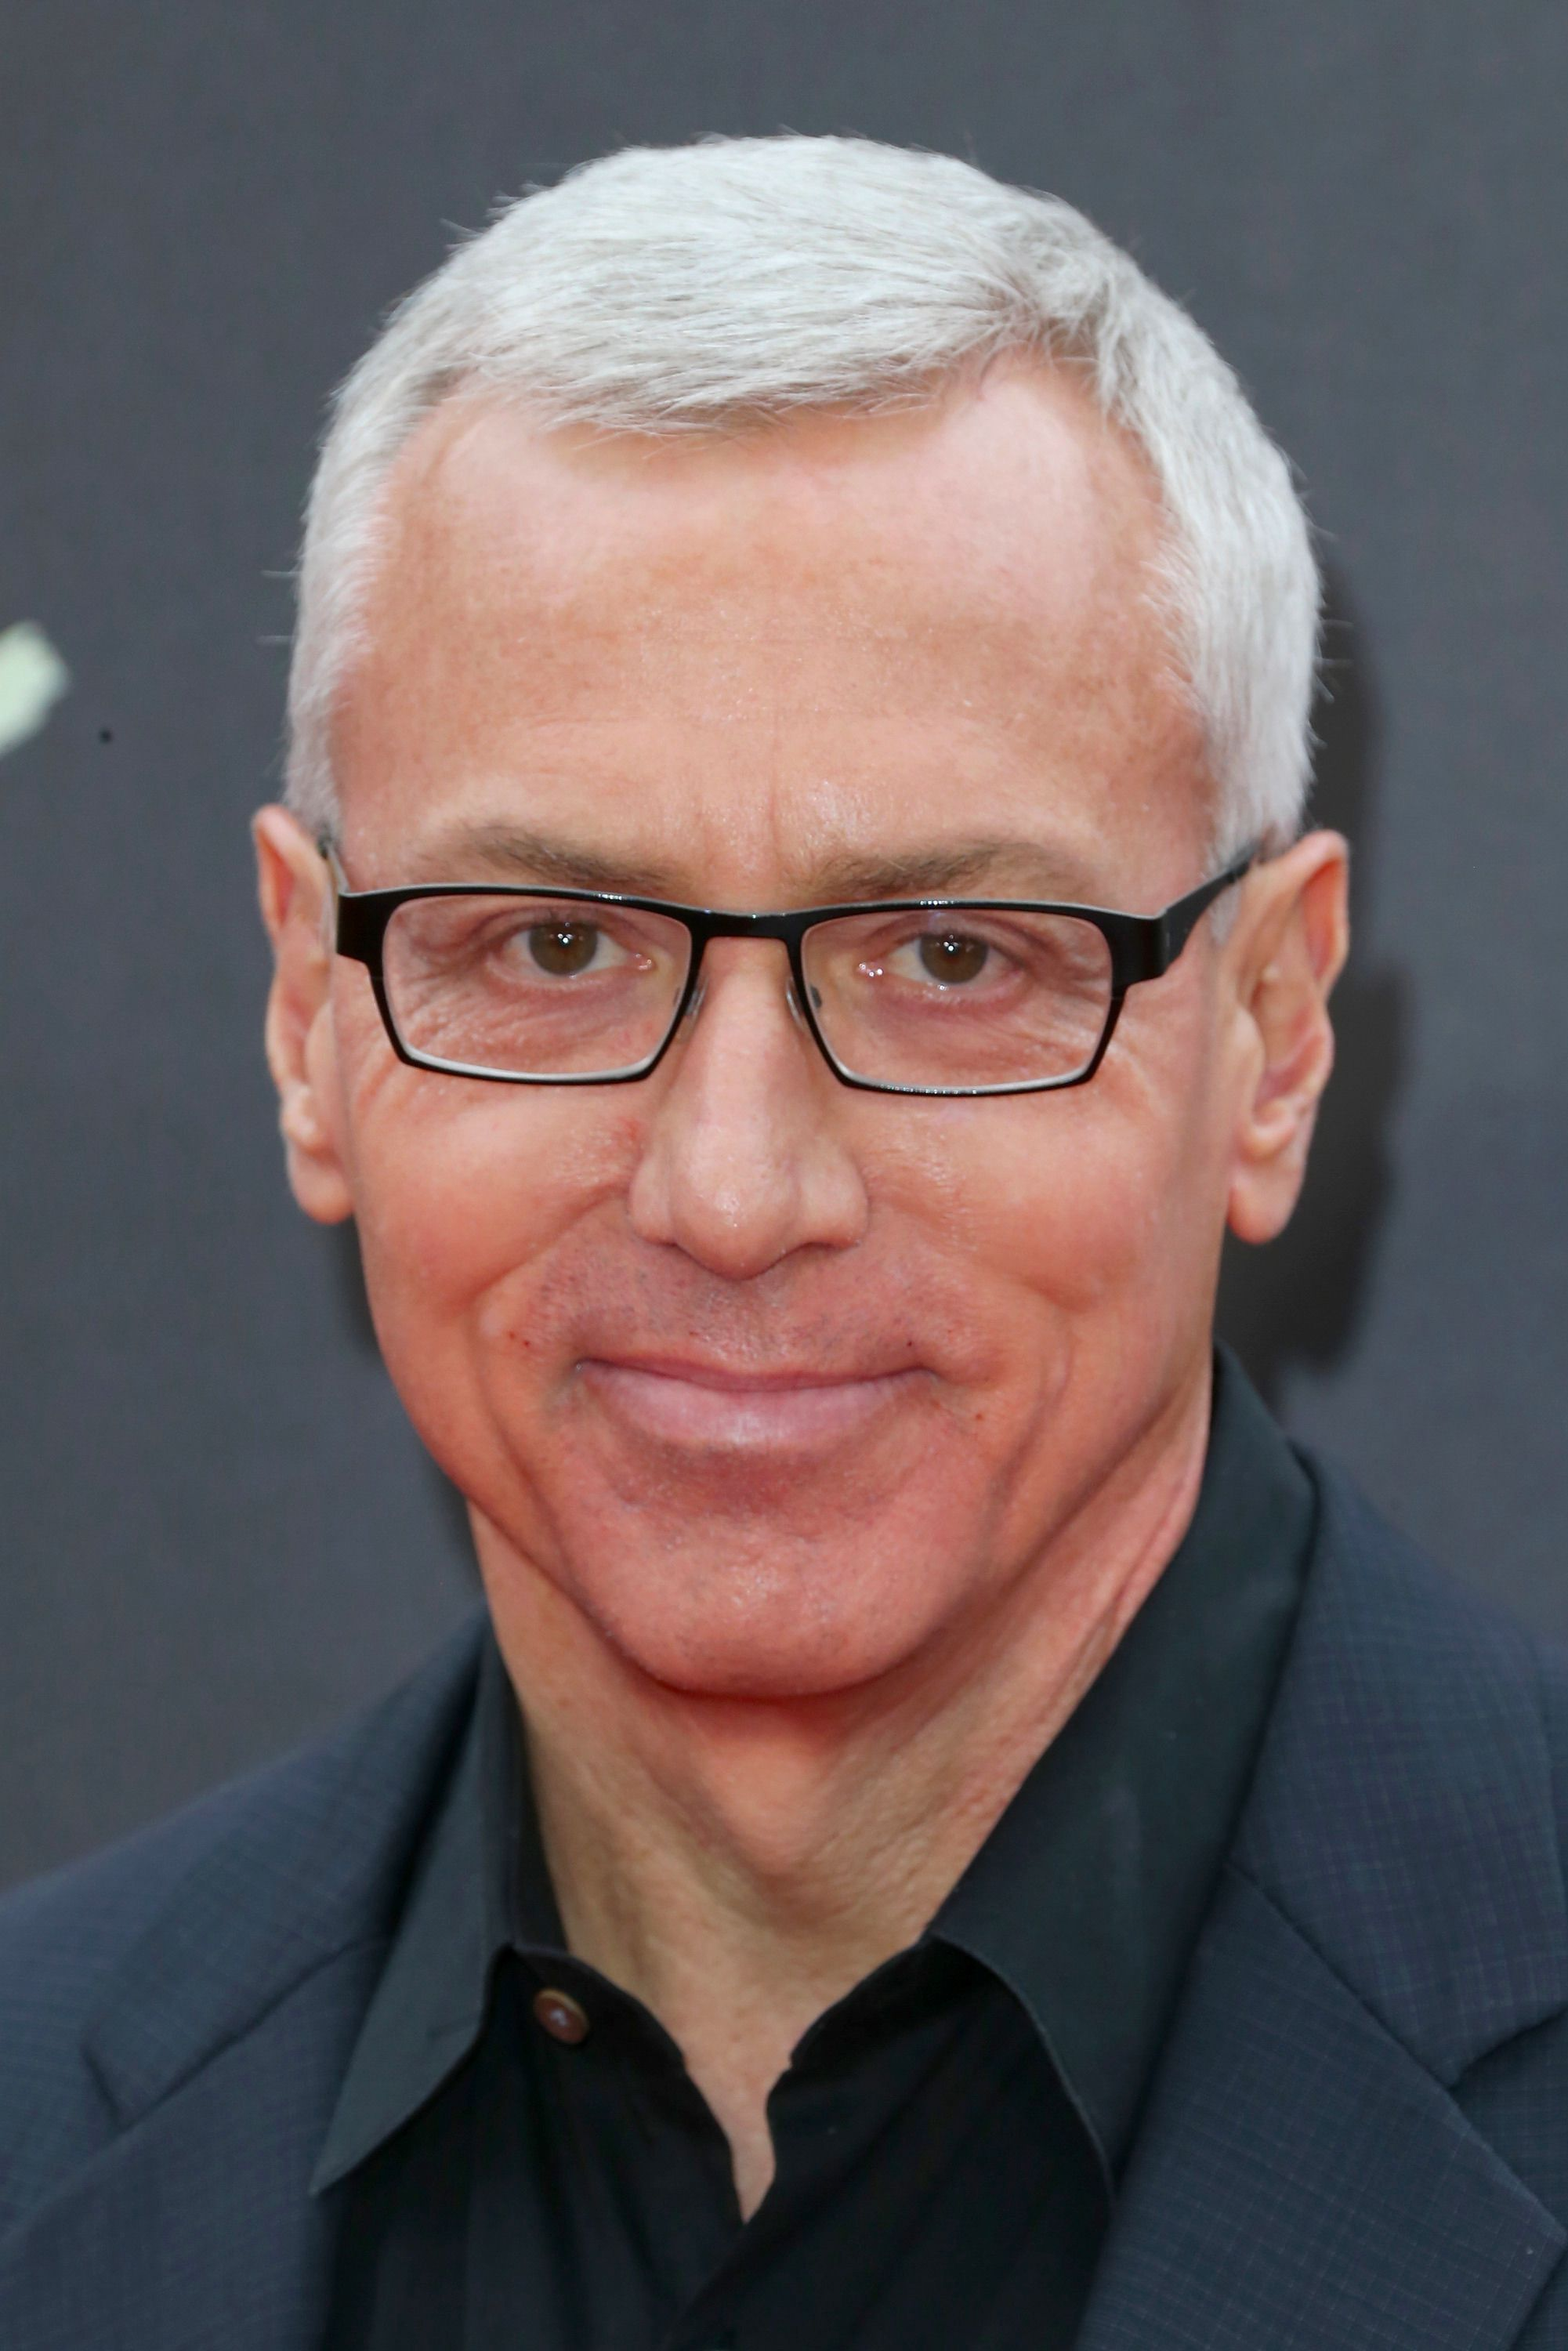 TV personality Dr. Drew Pinsky on April 9, 2016 in Burbank, California.